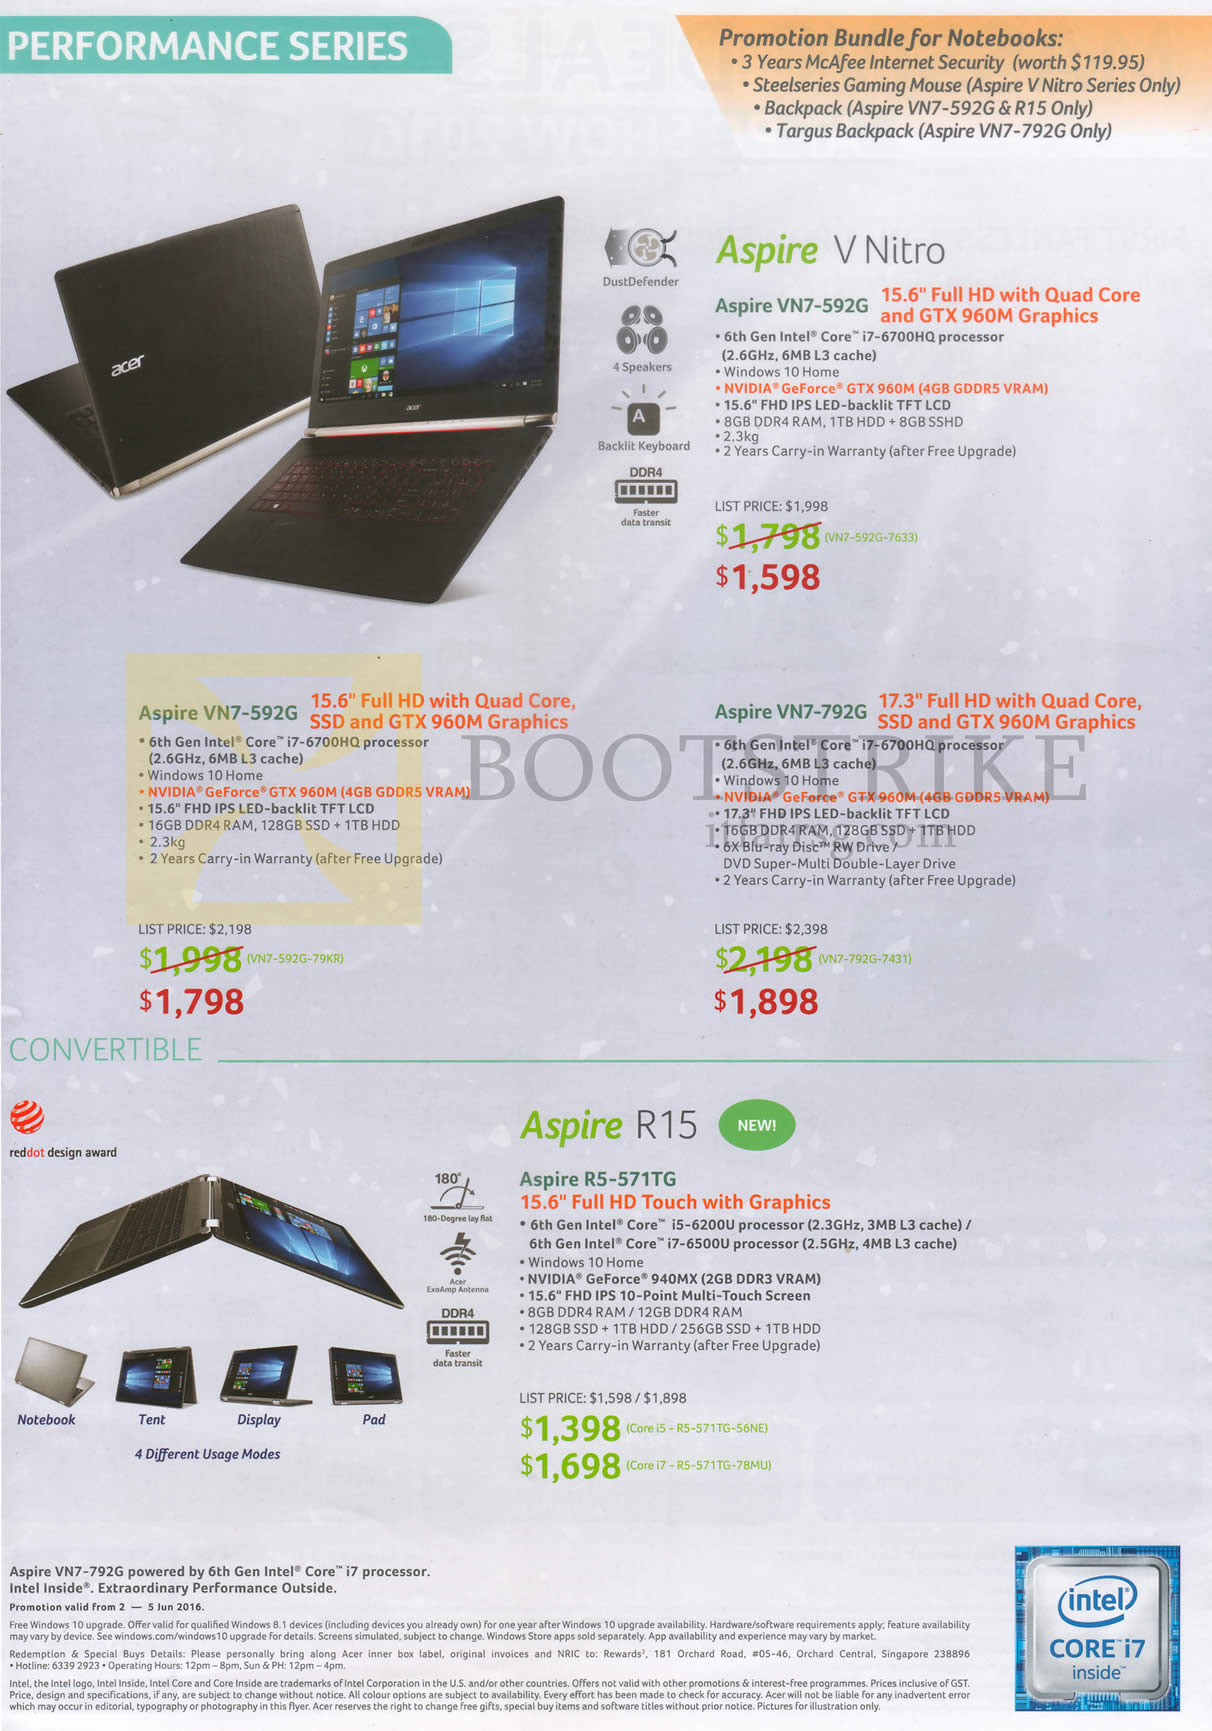 PC SHOW 2016 price list image brochure of Acer Notebooks Aspire V Nitro VN7-592G, 792G, R15 R5-571TG